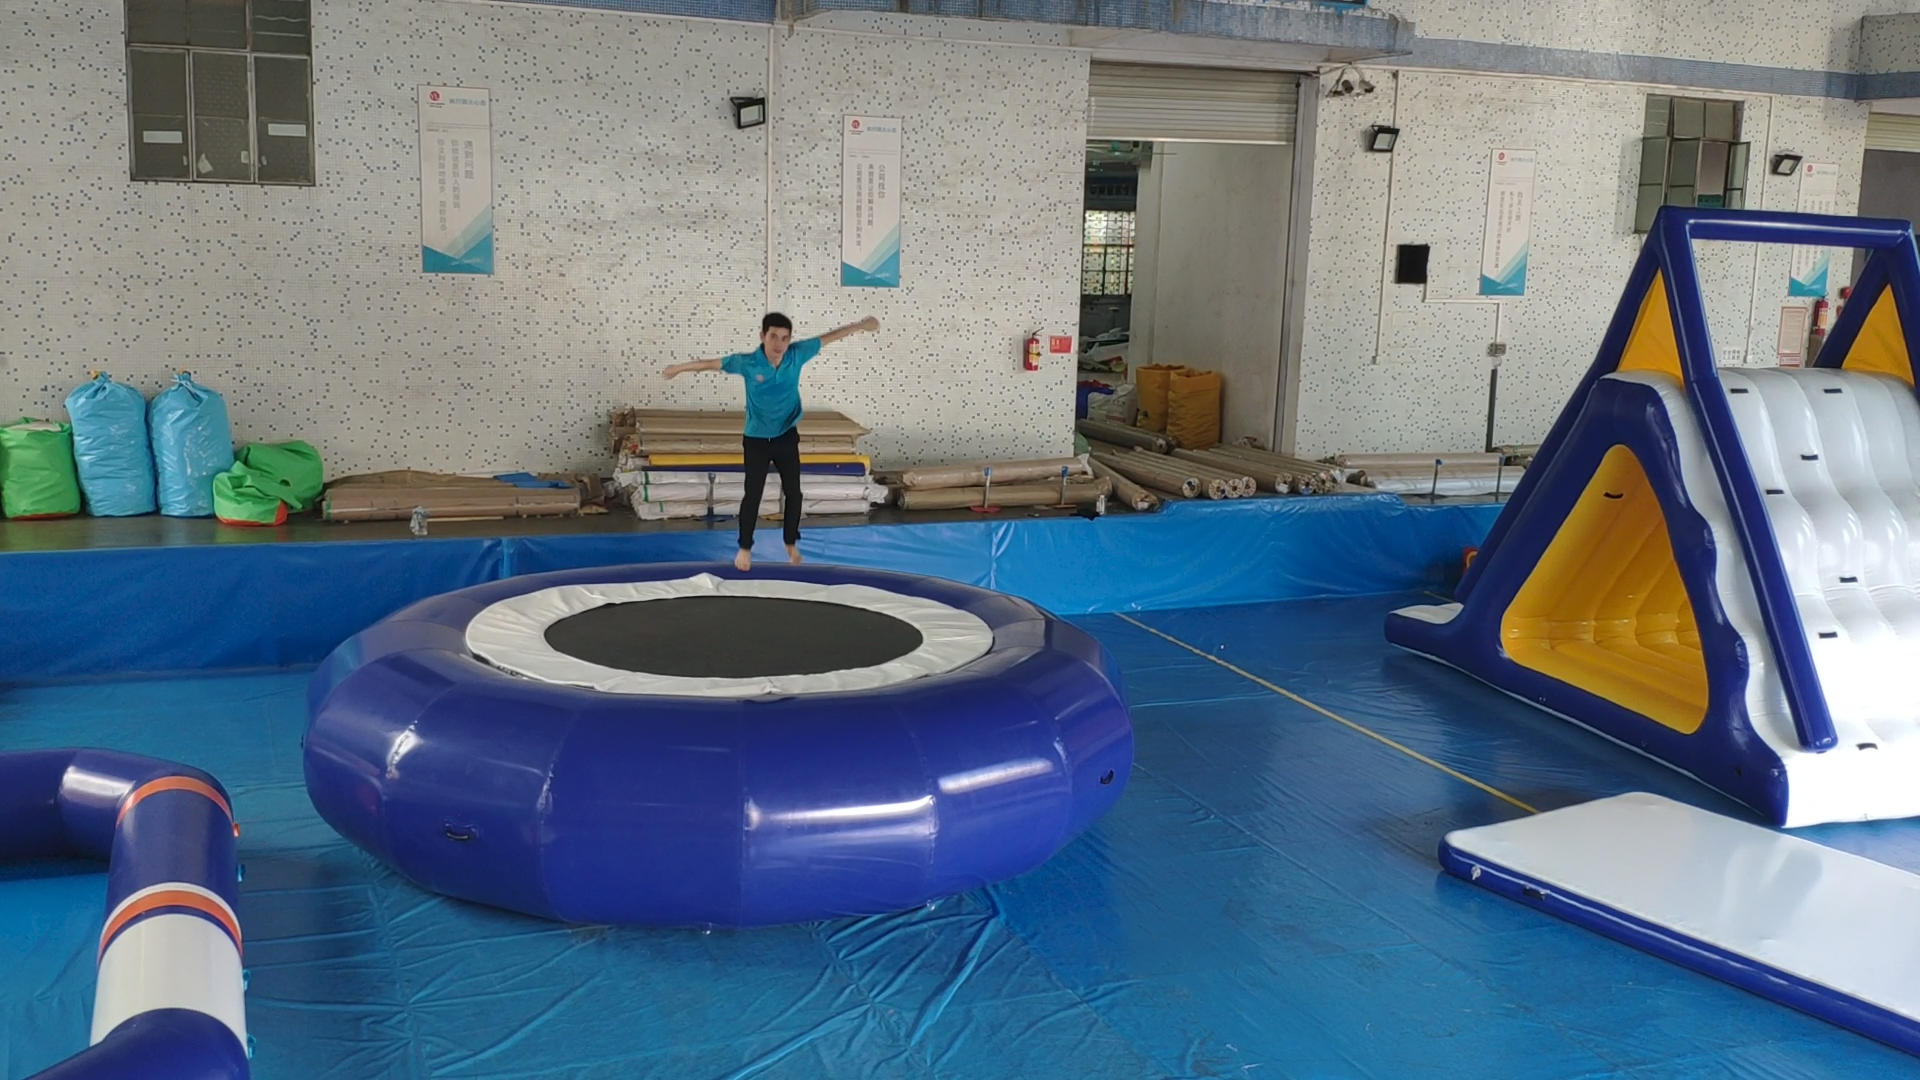 Commercial Floating Combo Inflatable Trampoline Water Play Equipment with Slide